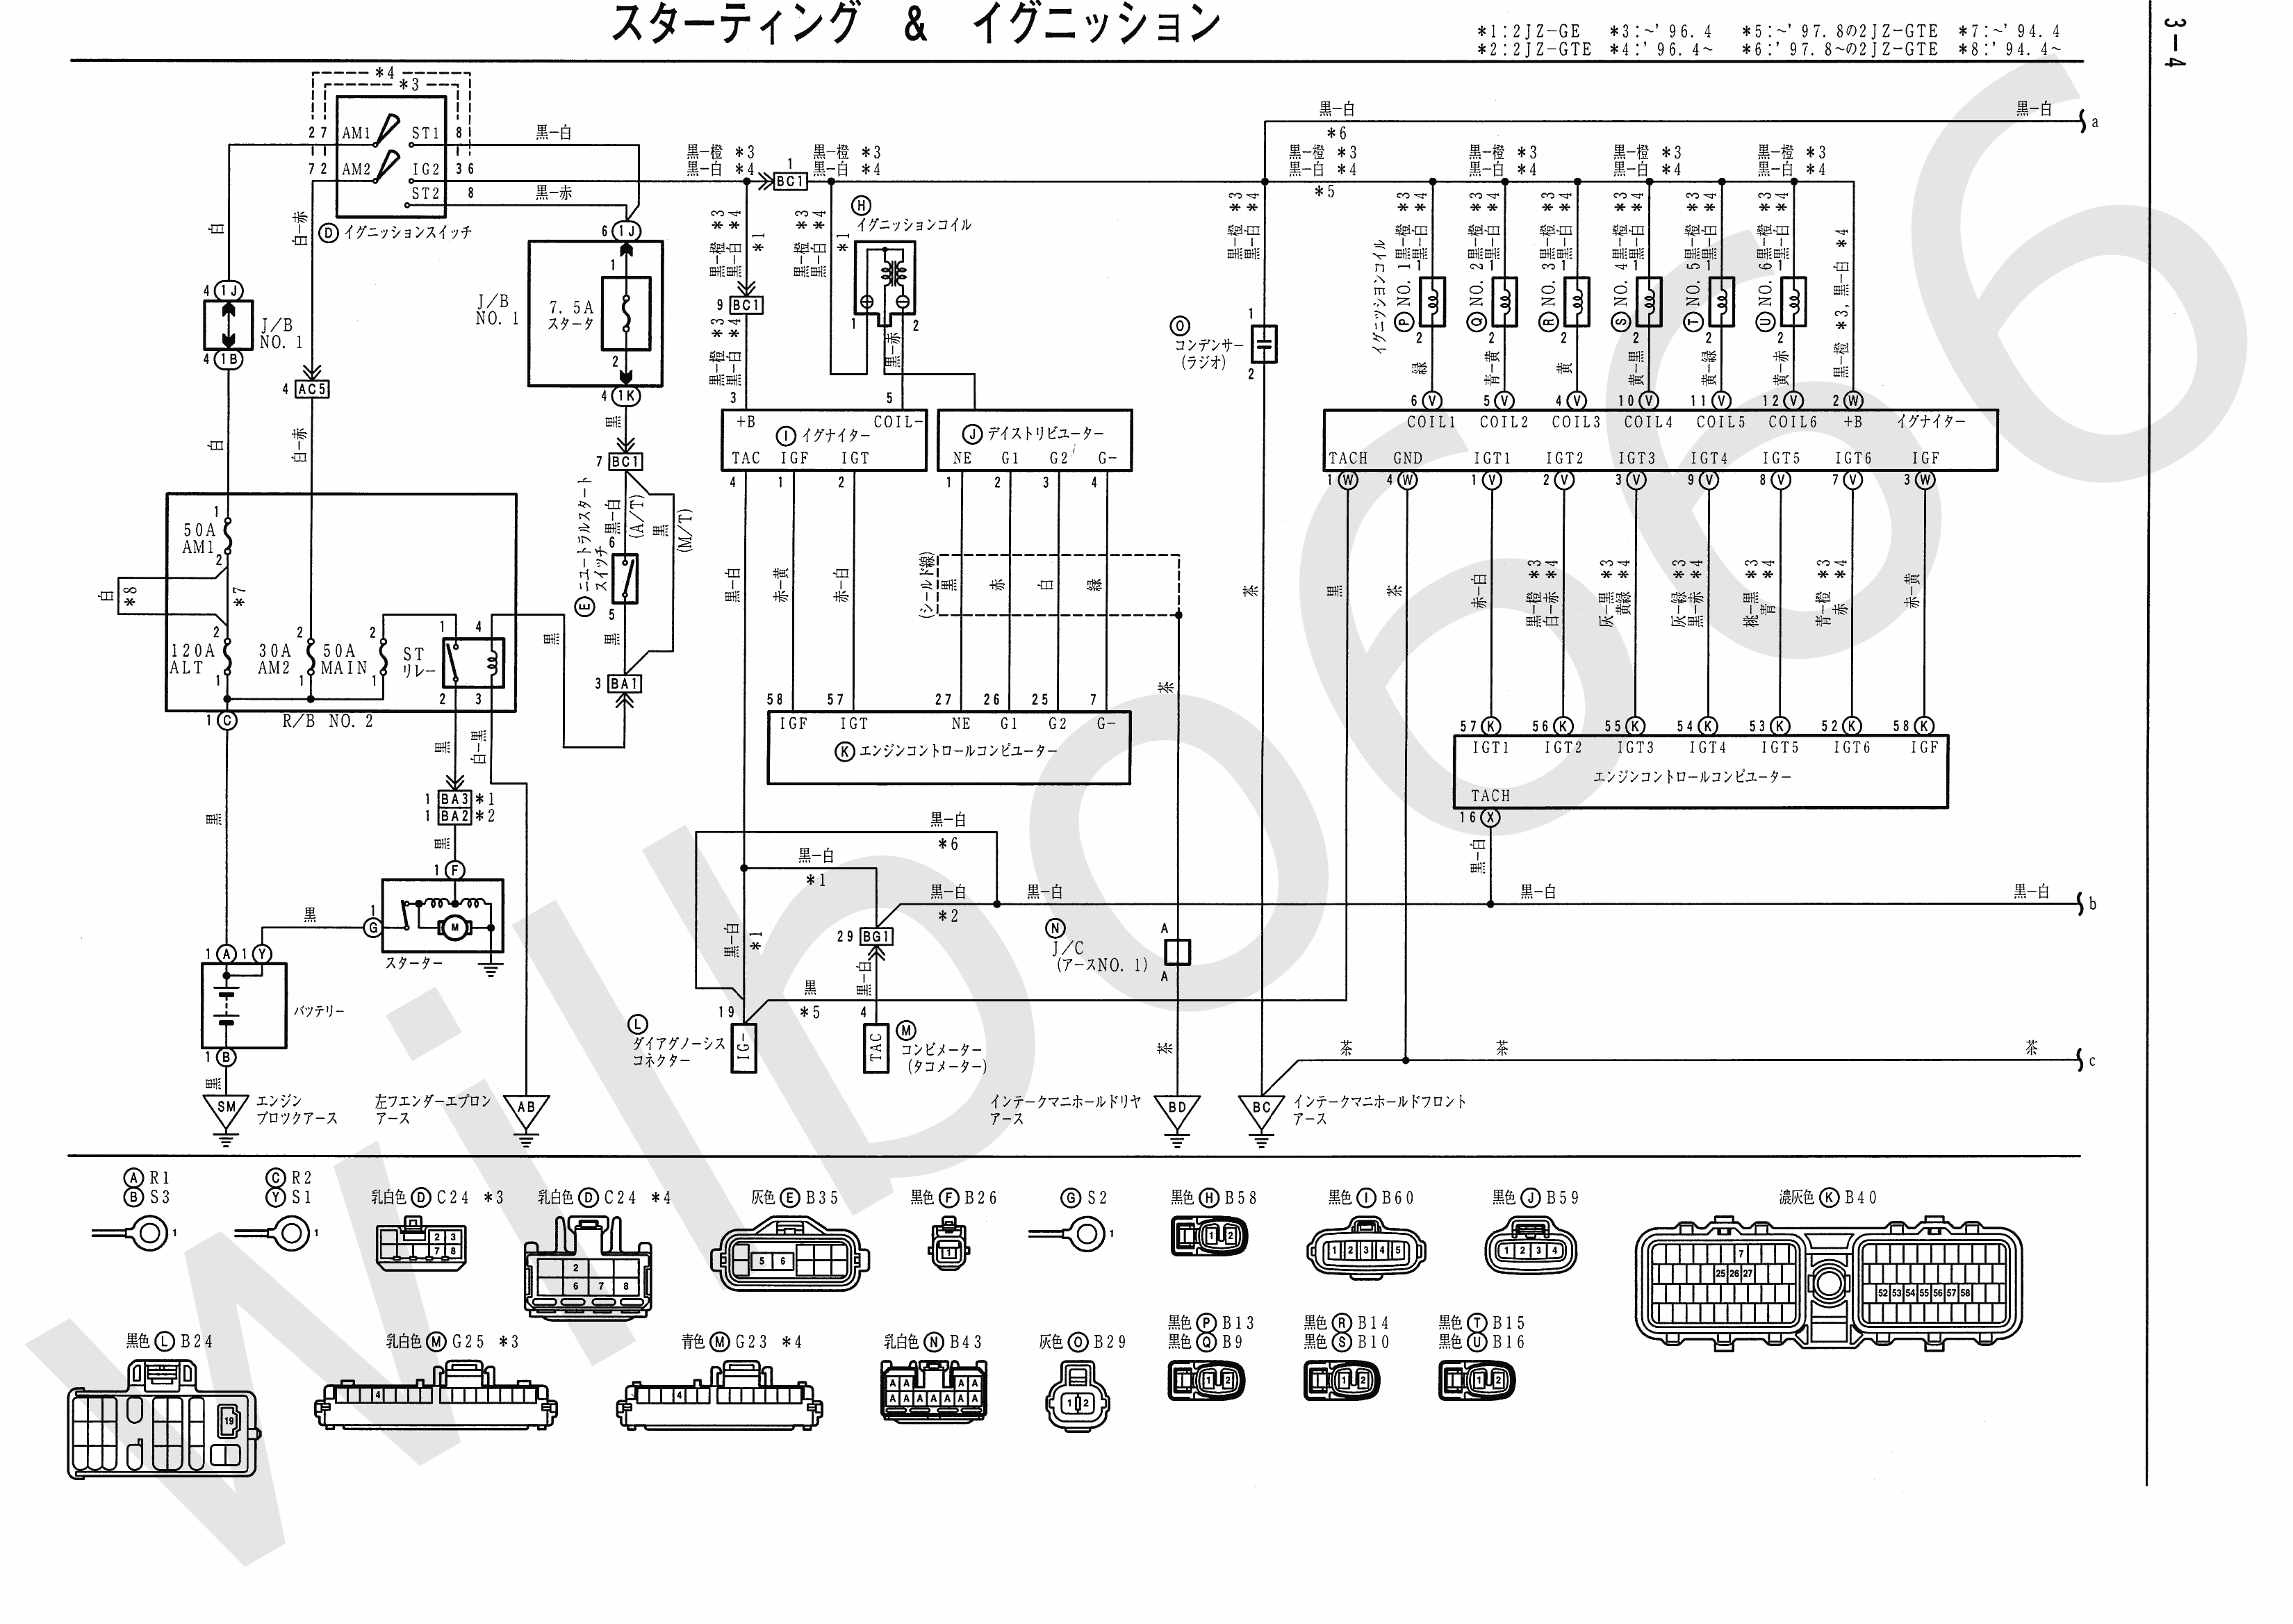 Ge Wiring Diagram GE Parts Diagrams • Bakdesigns.co on three-phase wiring utility transformers, wiring three-phase variable transformer, 4160v to 120v transformers, chassis mount 12 volt transformers, correct method of grounding transformers, core components transformers, wiring 480 t0 120 power transformers, copper losses in transformers, wiring diagram color code for transformers, step up and step down transformers, 120 208 wye transformers, low voltage lighting transformers, sola hevi-duty transformers, ge general purpose transformers, signs to power transformers, wiring diagram for 480v 240v transformers, wiring schematics of pole transformers,